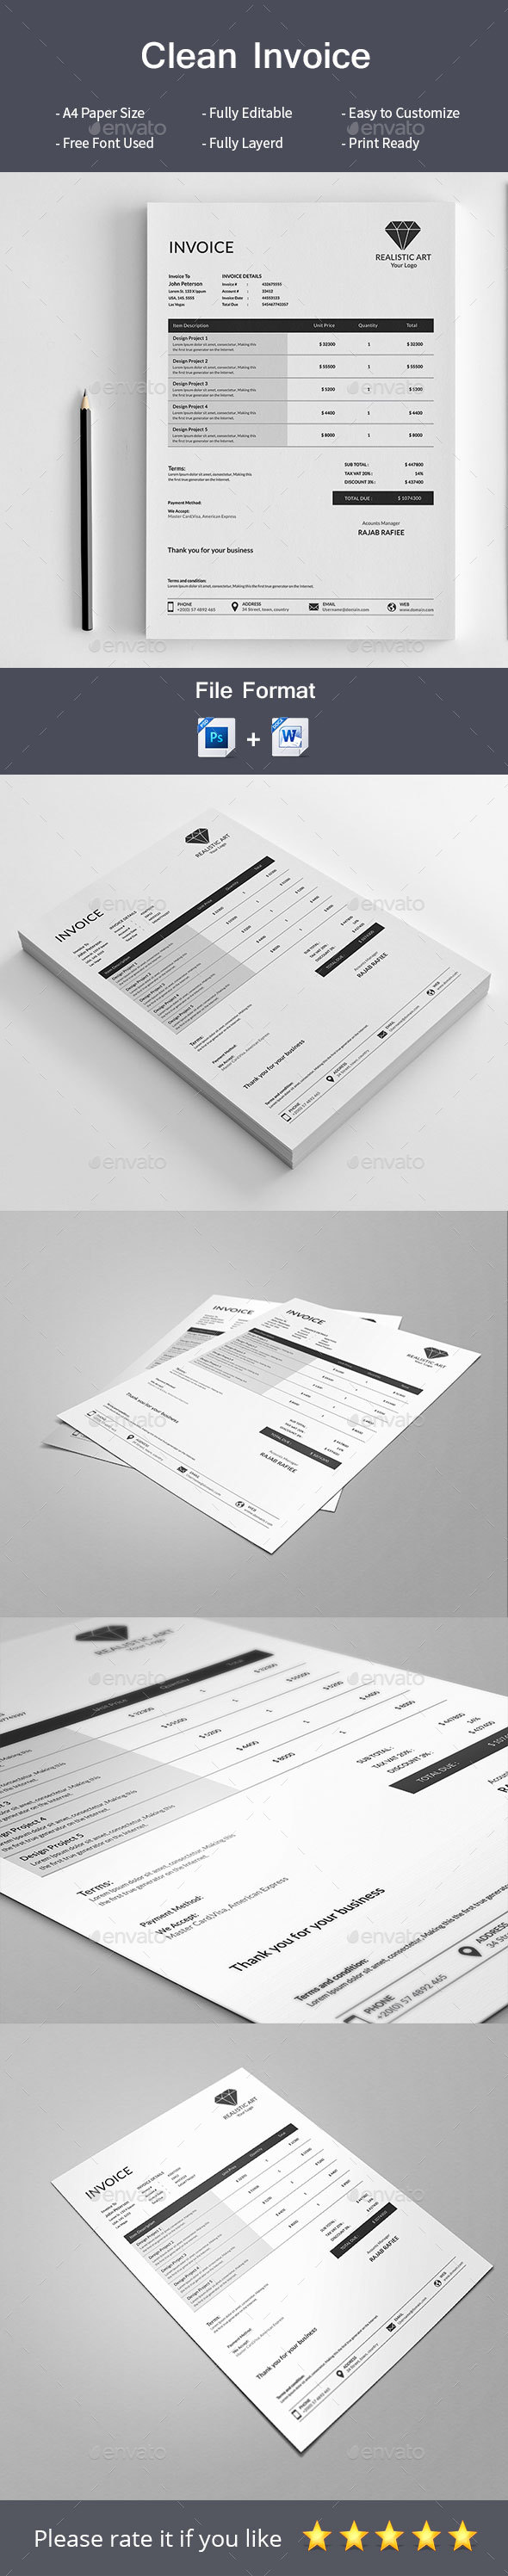 Clean Invoice - Proposals & Invoices Stationery